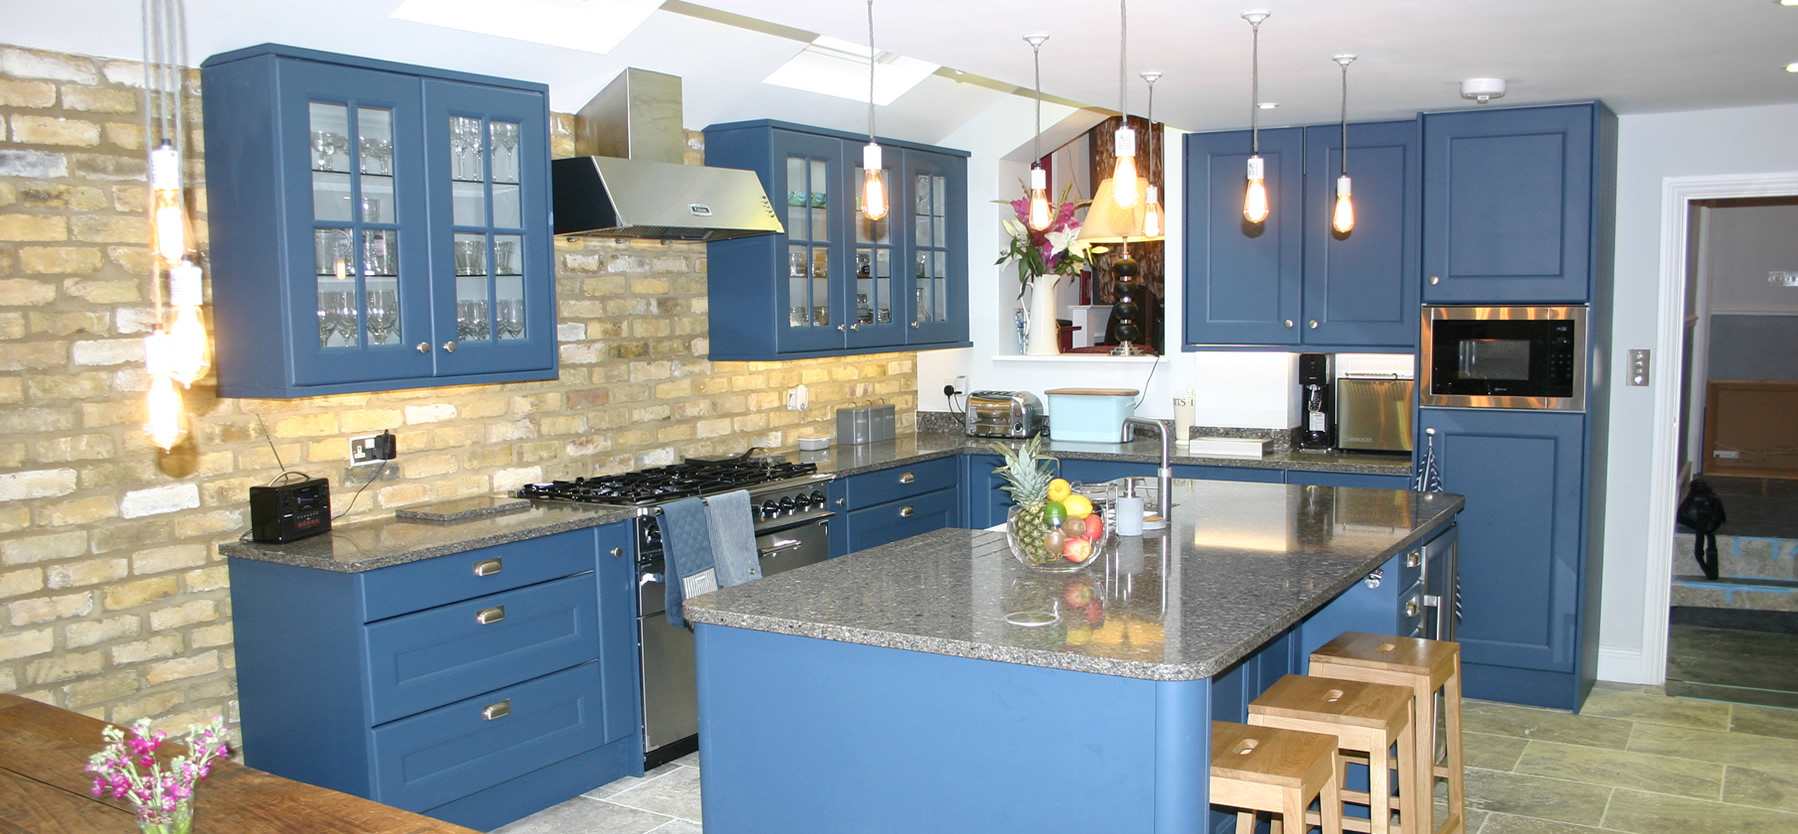 Painted-Solid-Oak-Beaded-Shaker-Kitchen